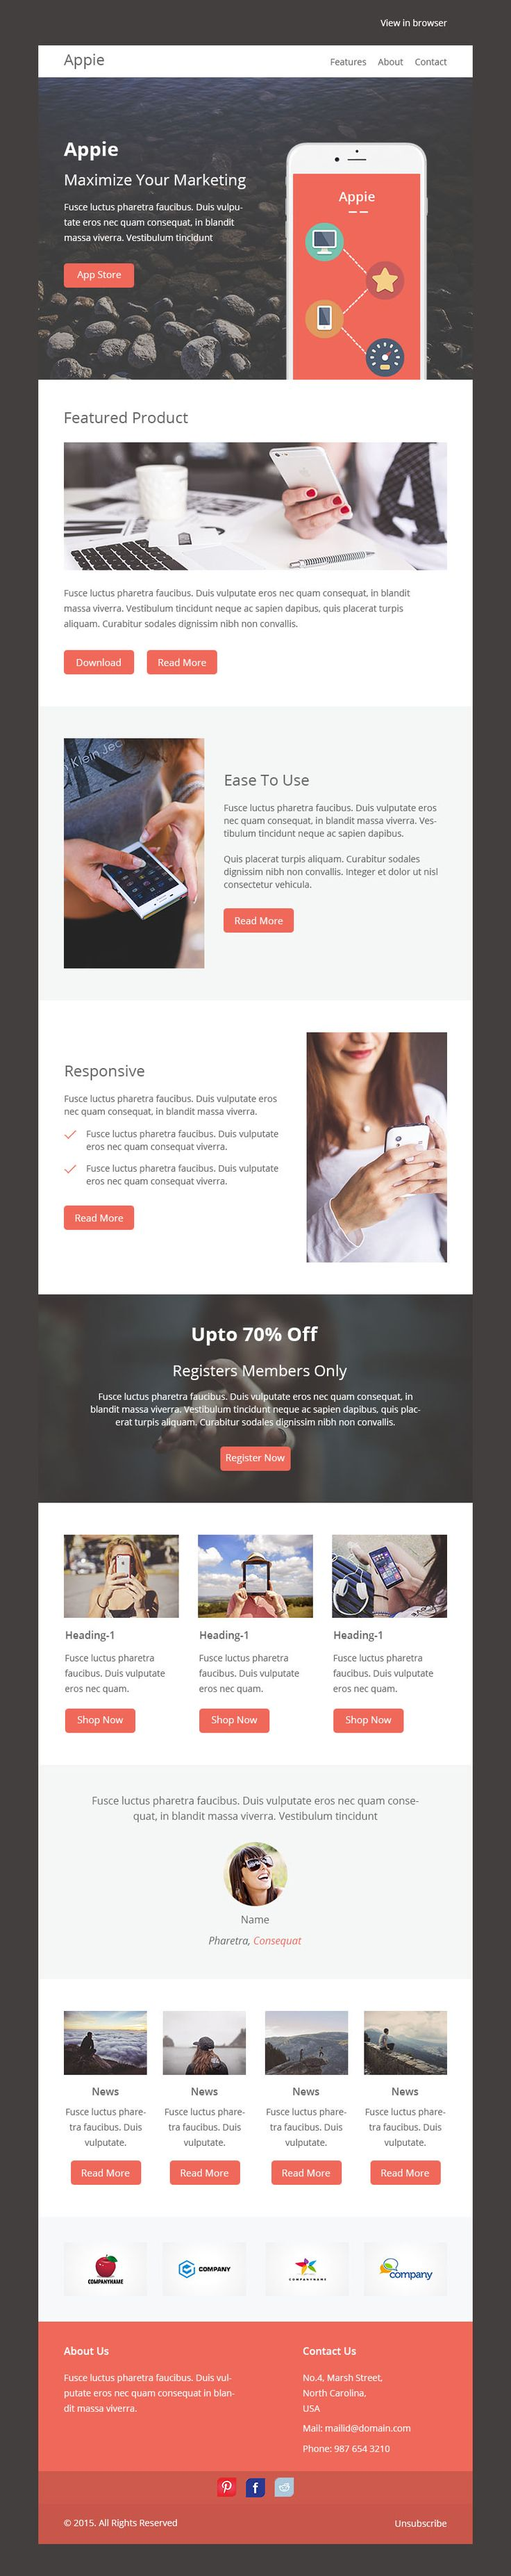 19 best Email Templates images on Pinterest